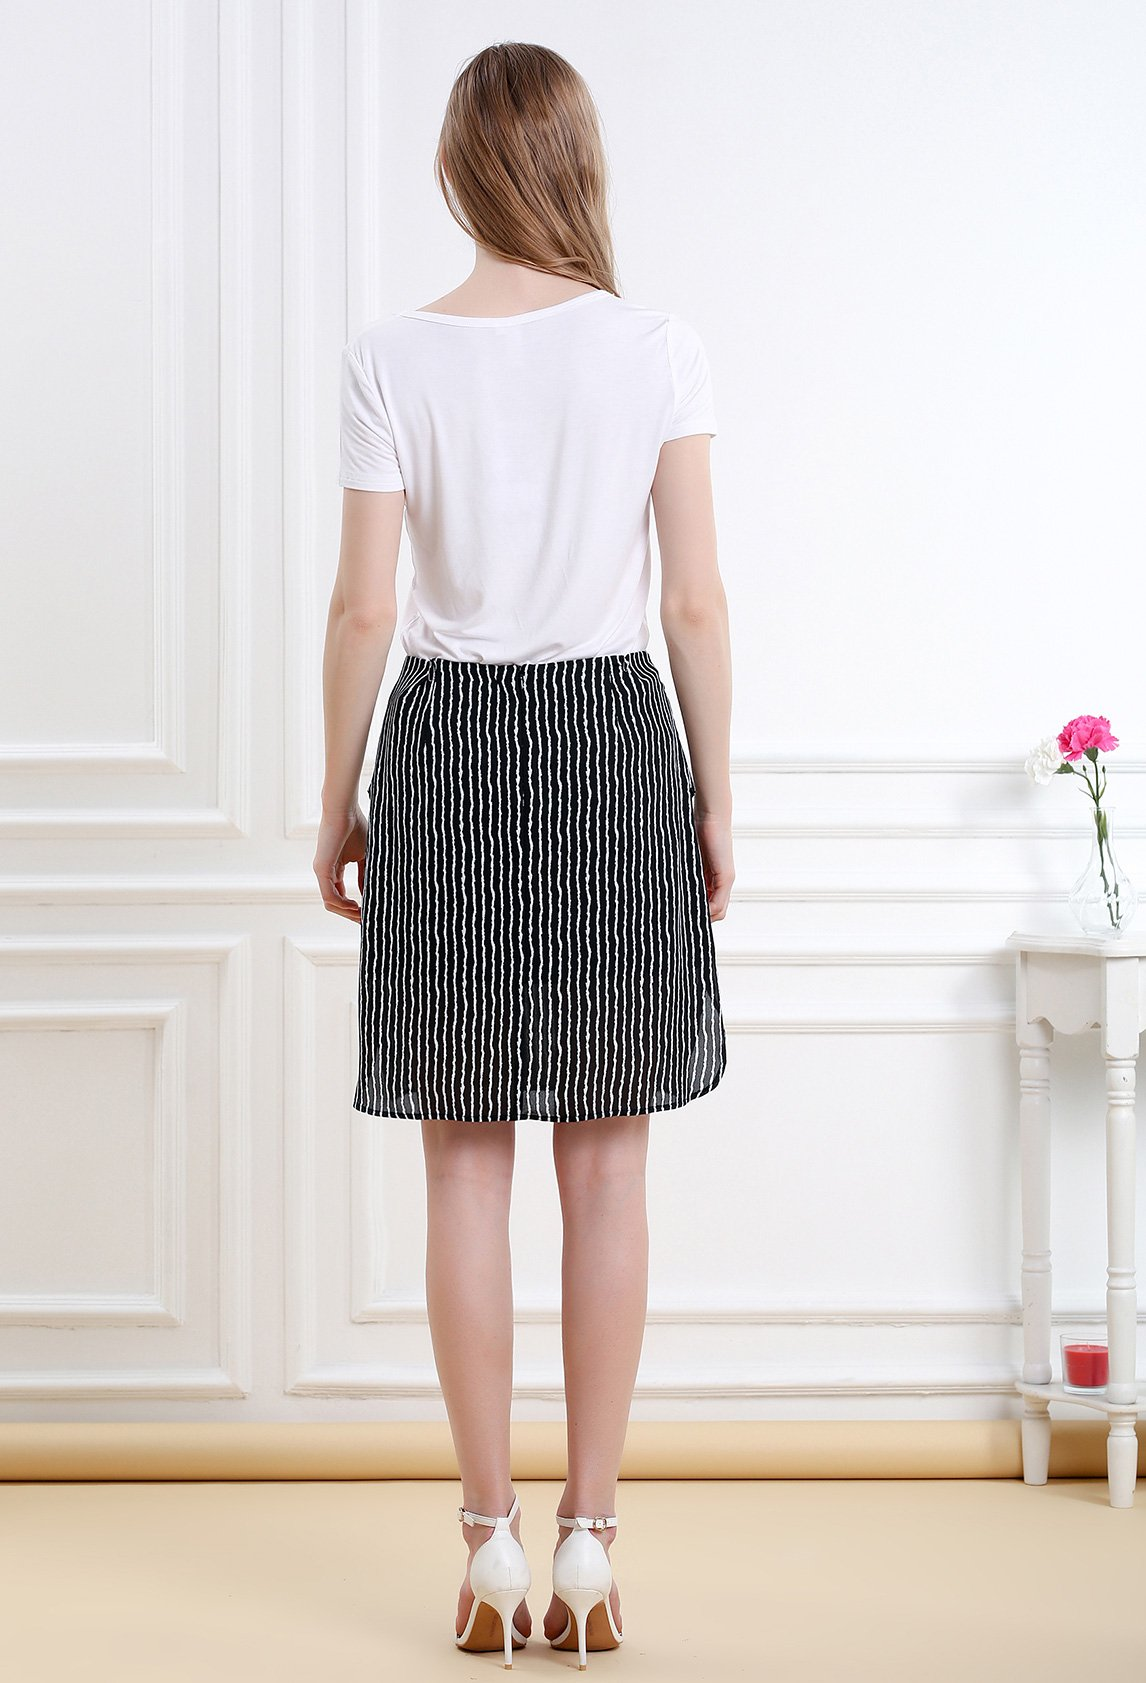 Women Striped Split Mini Skirt Crossed Front Casual A-line Skirt with Zipper XL by Vero Viva (Image #2)